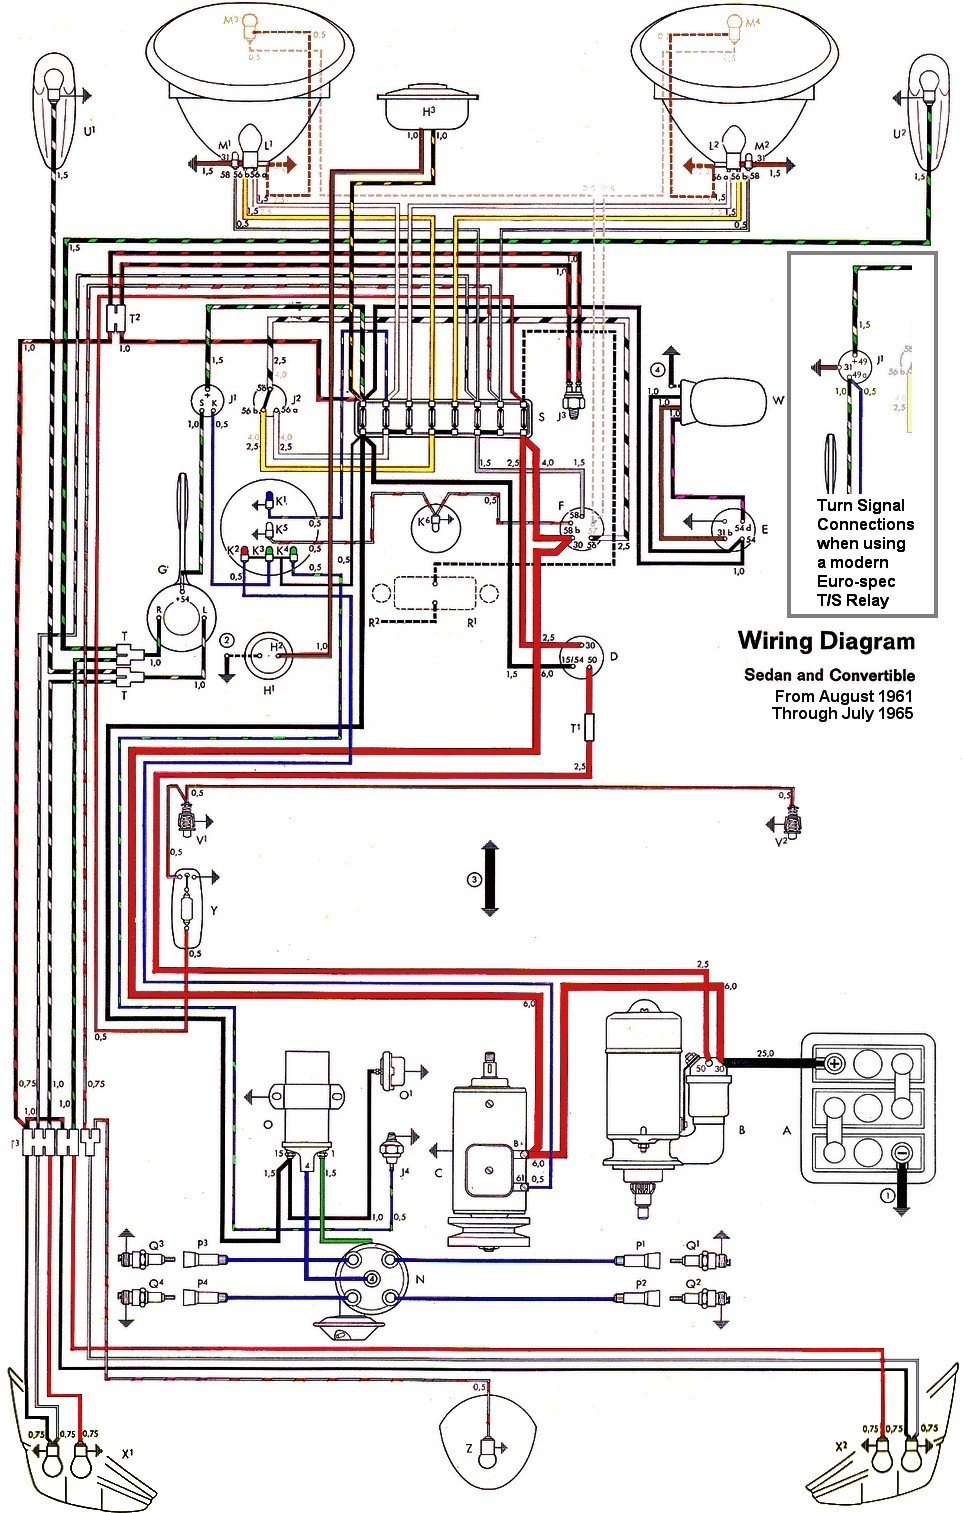 bug_62 65withinset thesamba com type 1 wiring diagrams 1970 vw bug wiring diagram at readyjetset.co